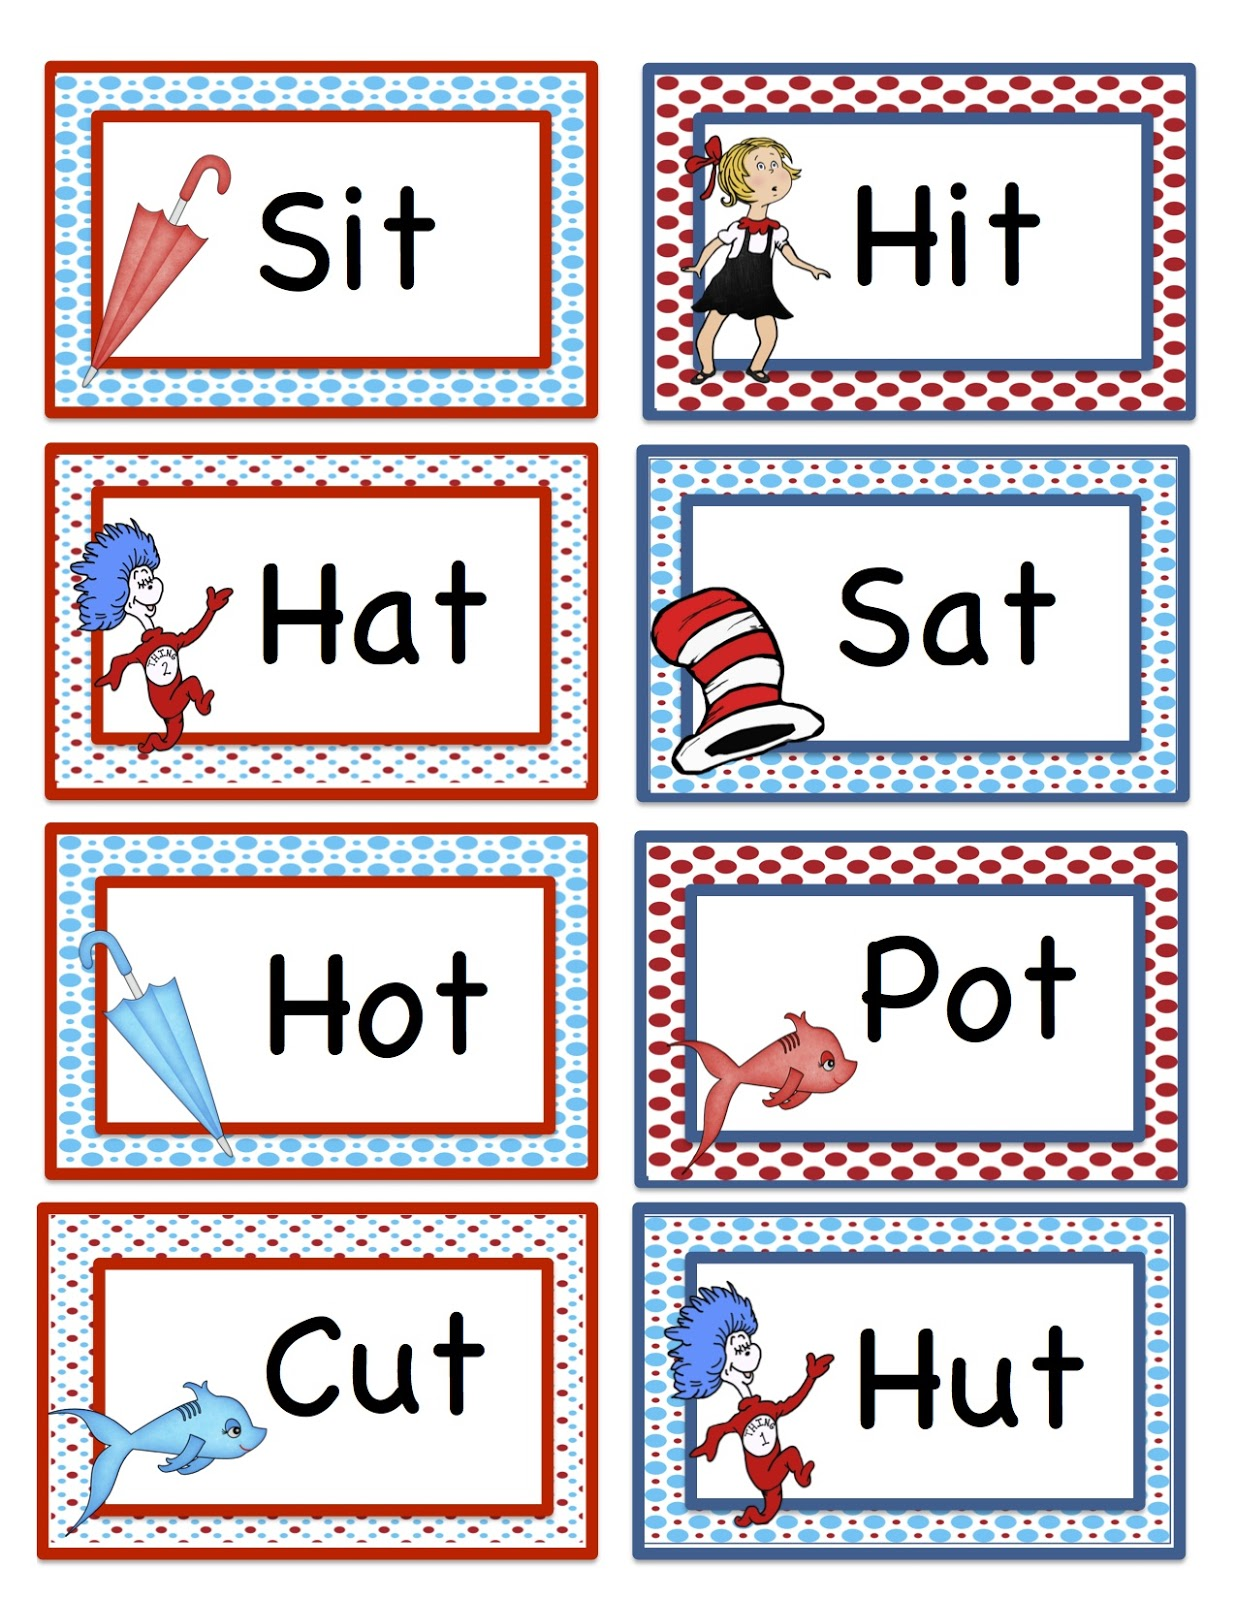 Worksheet Rythming rhyming games for preschoolers printables kathleenmoorehead get free pbs kids learn about and play with your favorite characters like martha